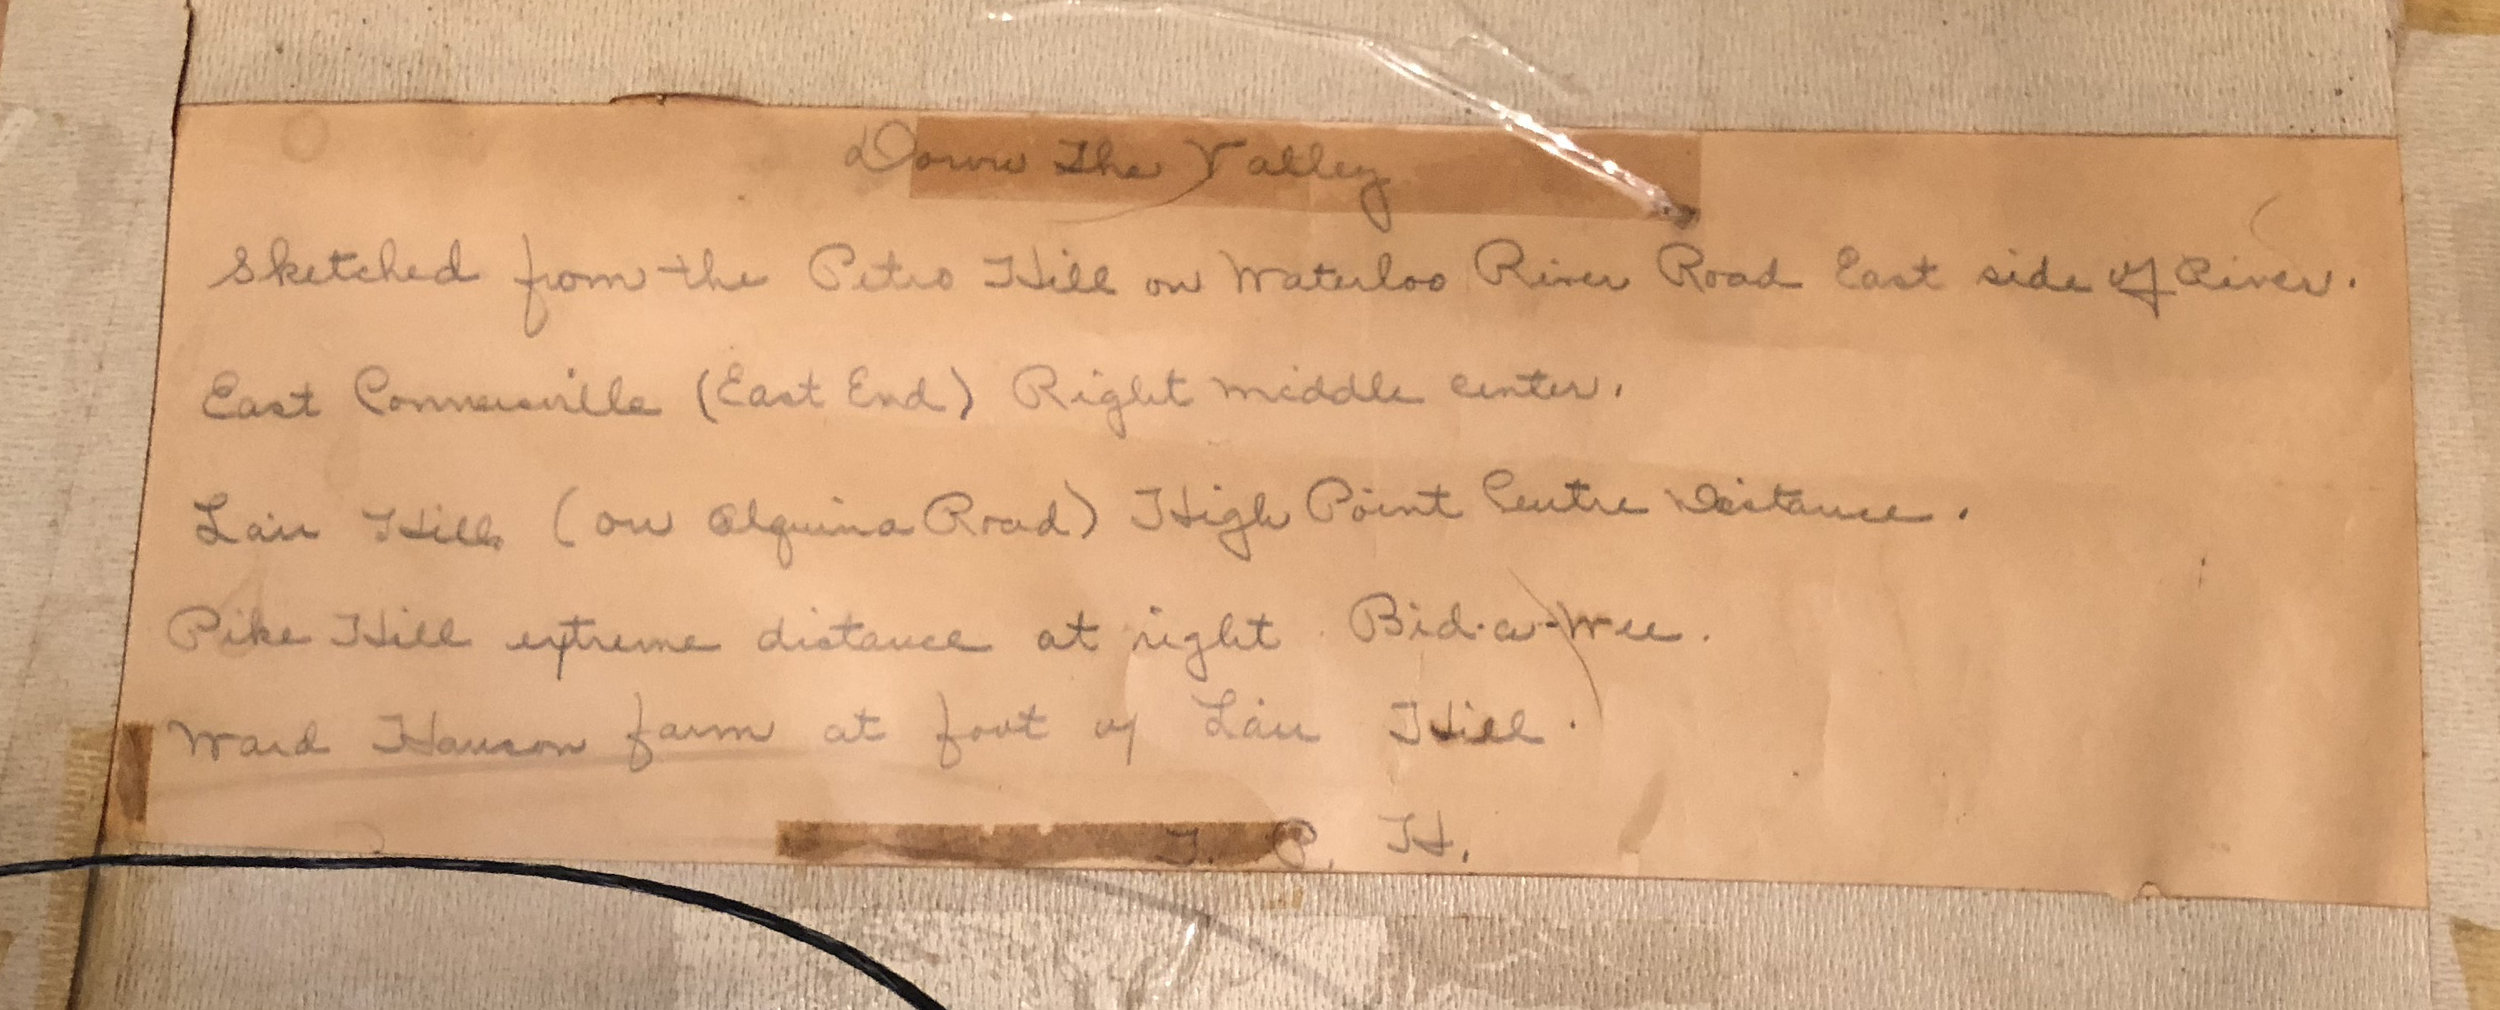 Description written on the back of the painting